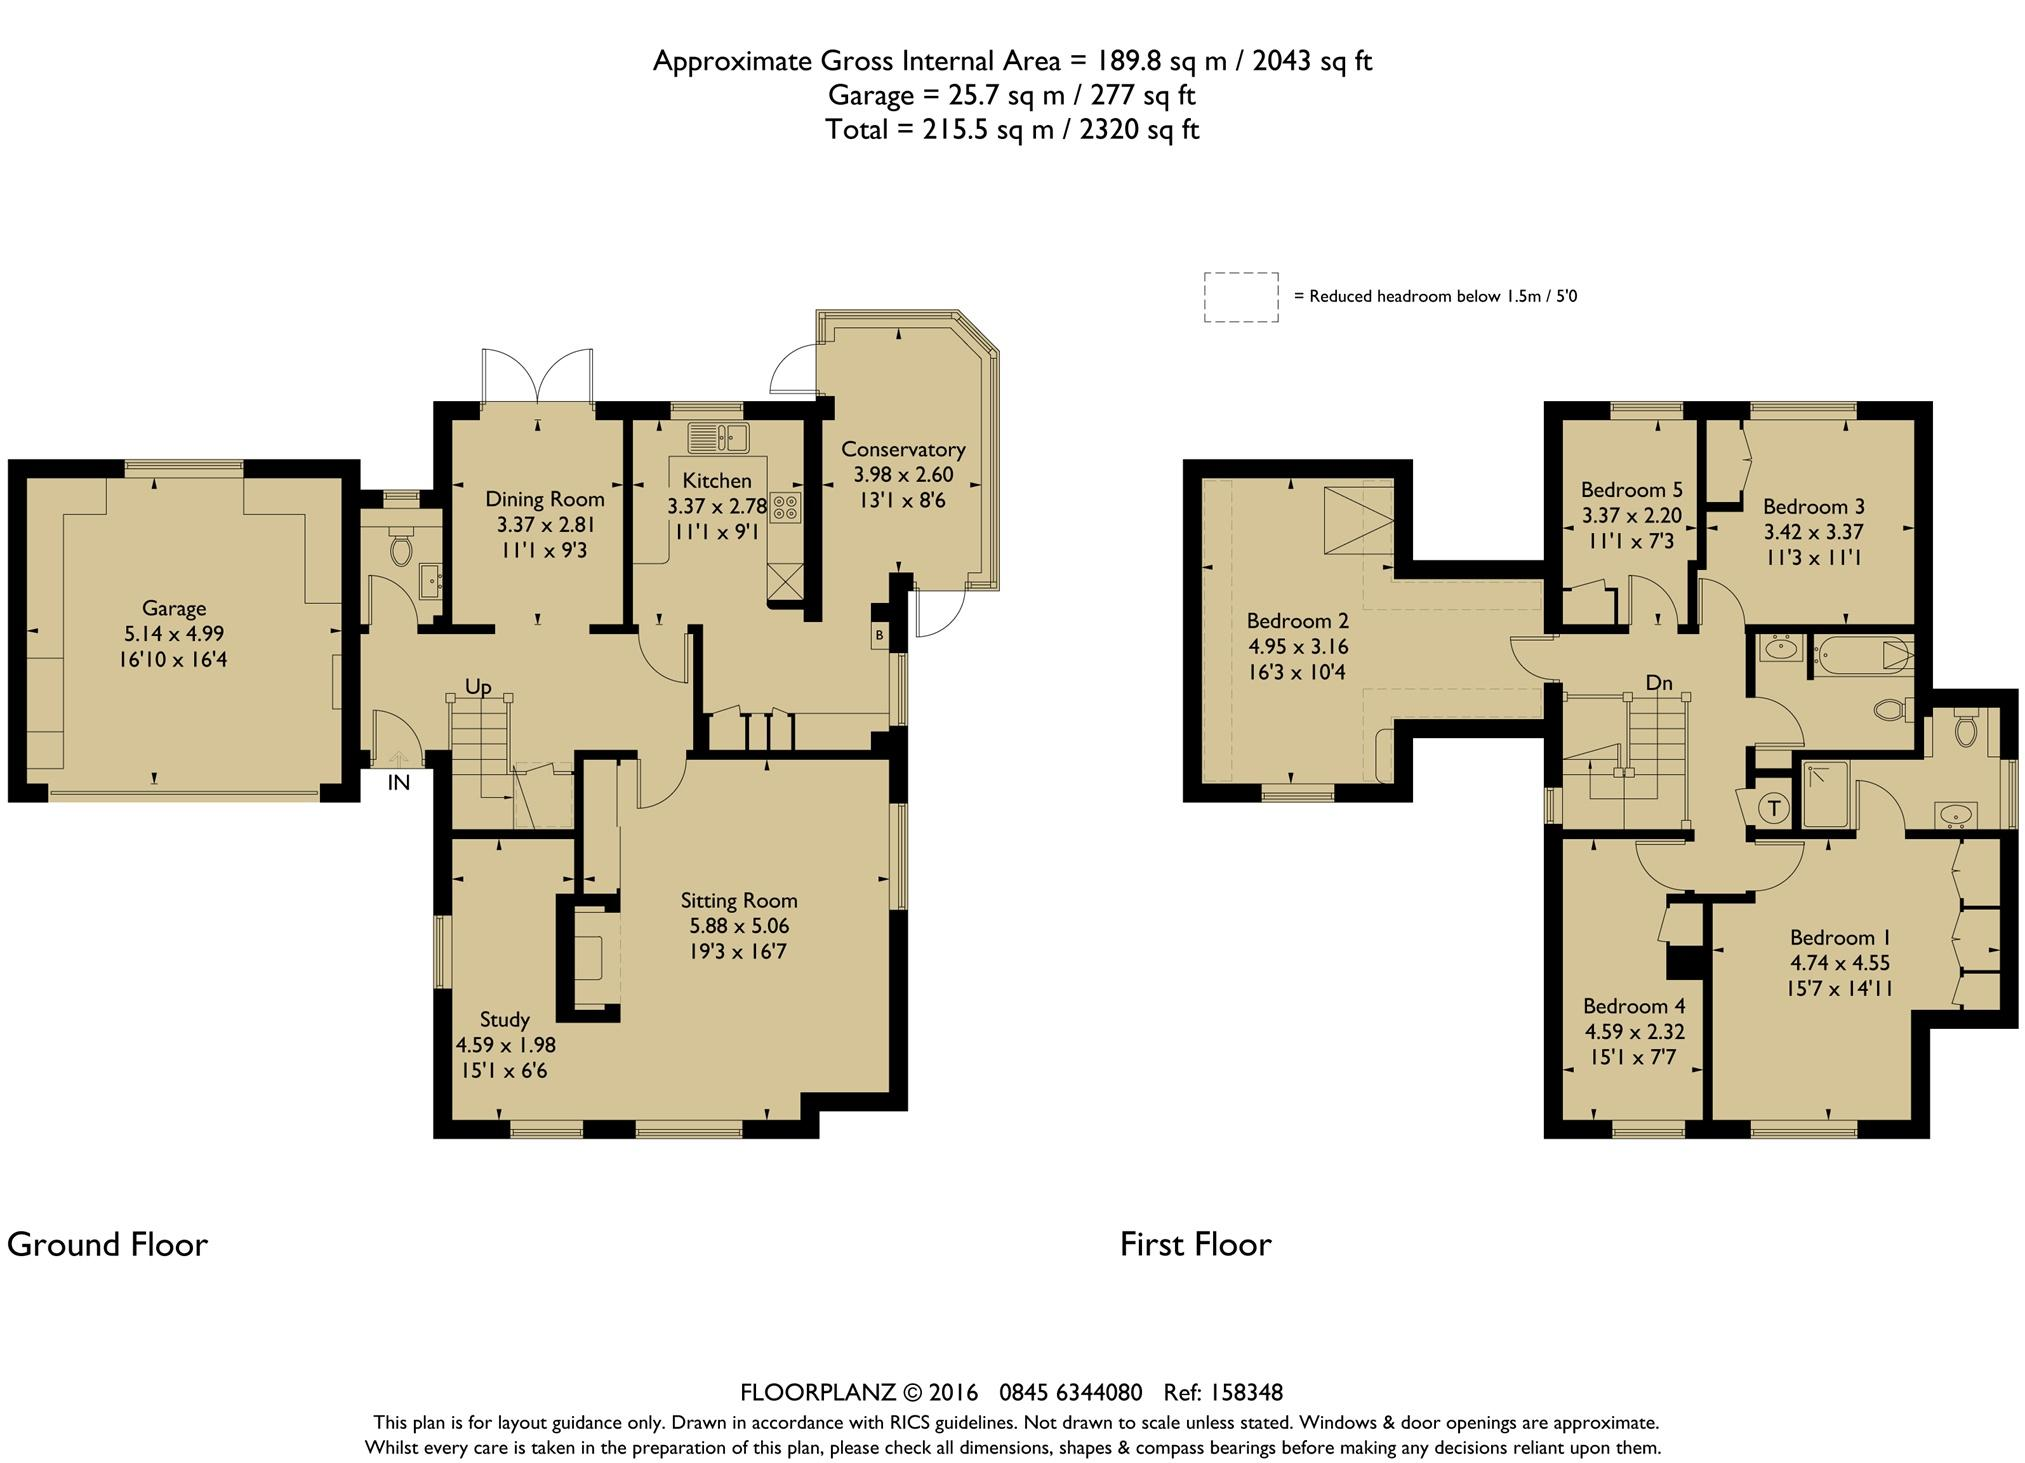 9 10 Bedroom Layout Centerfordemocracy Org